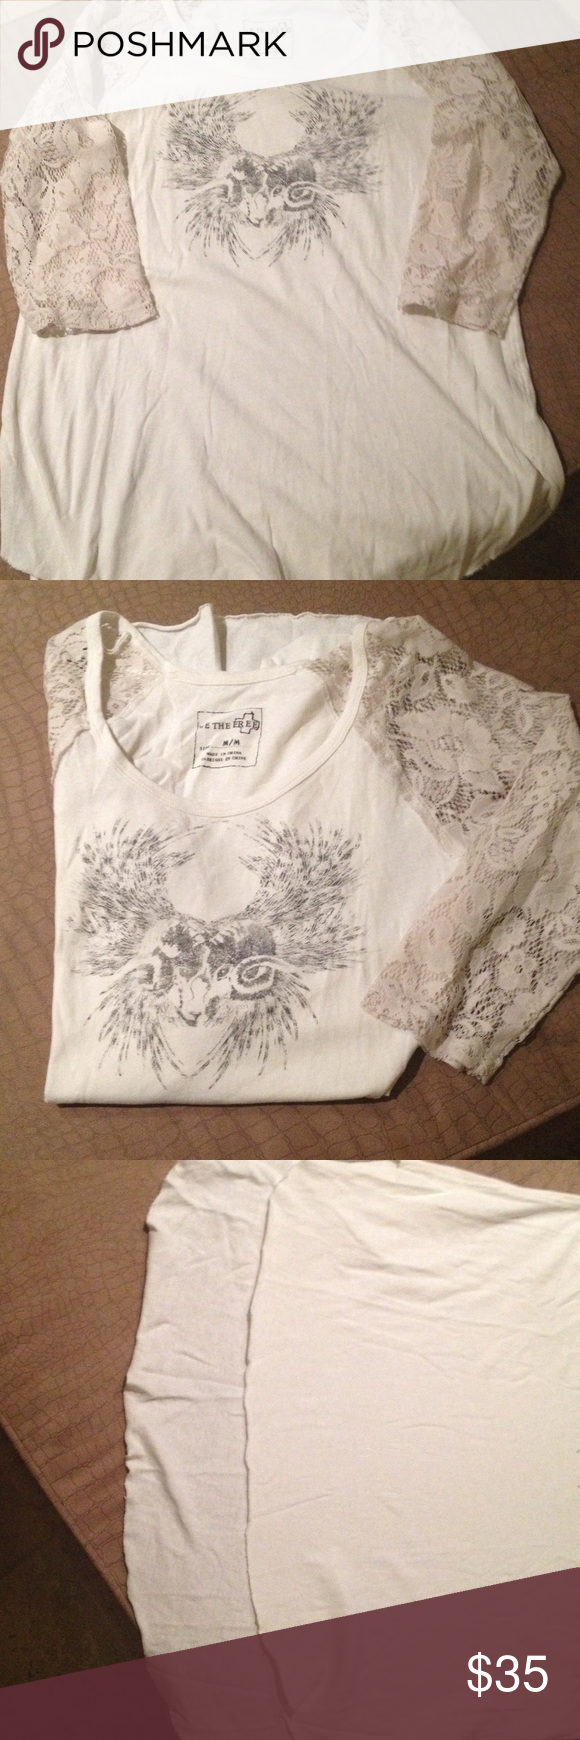 FREE PEOPLE IVORY TEE W/Animal Head, Lace SZ M Lace 3/4 sleeves, curved unfinished hem, longer in back, 100% cotton, black sketched head, worn once Free People Tops Tees - Long Sleeve